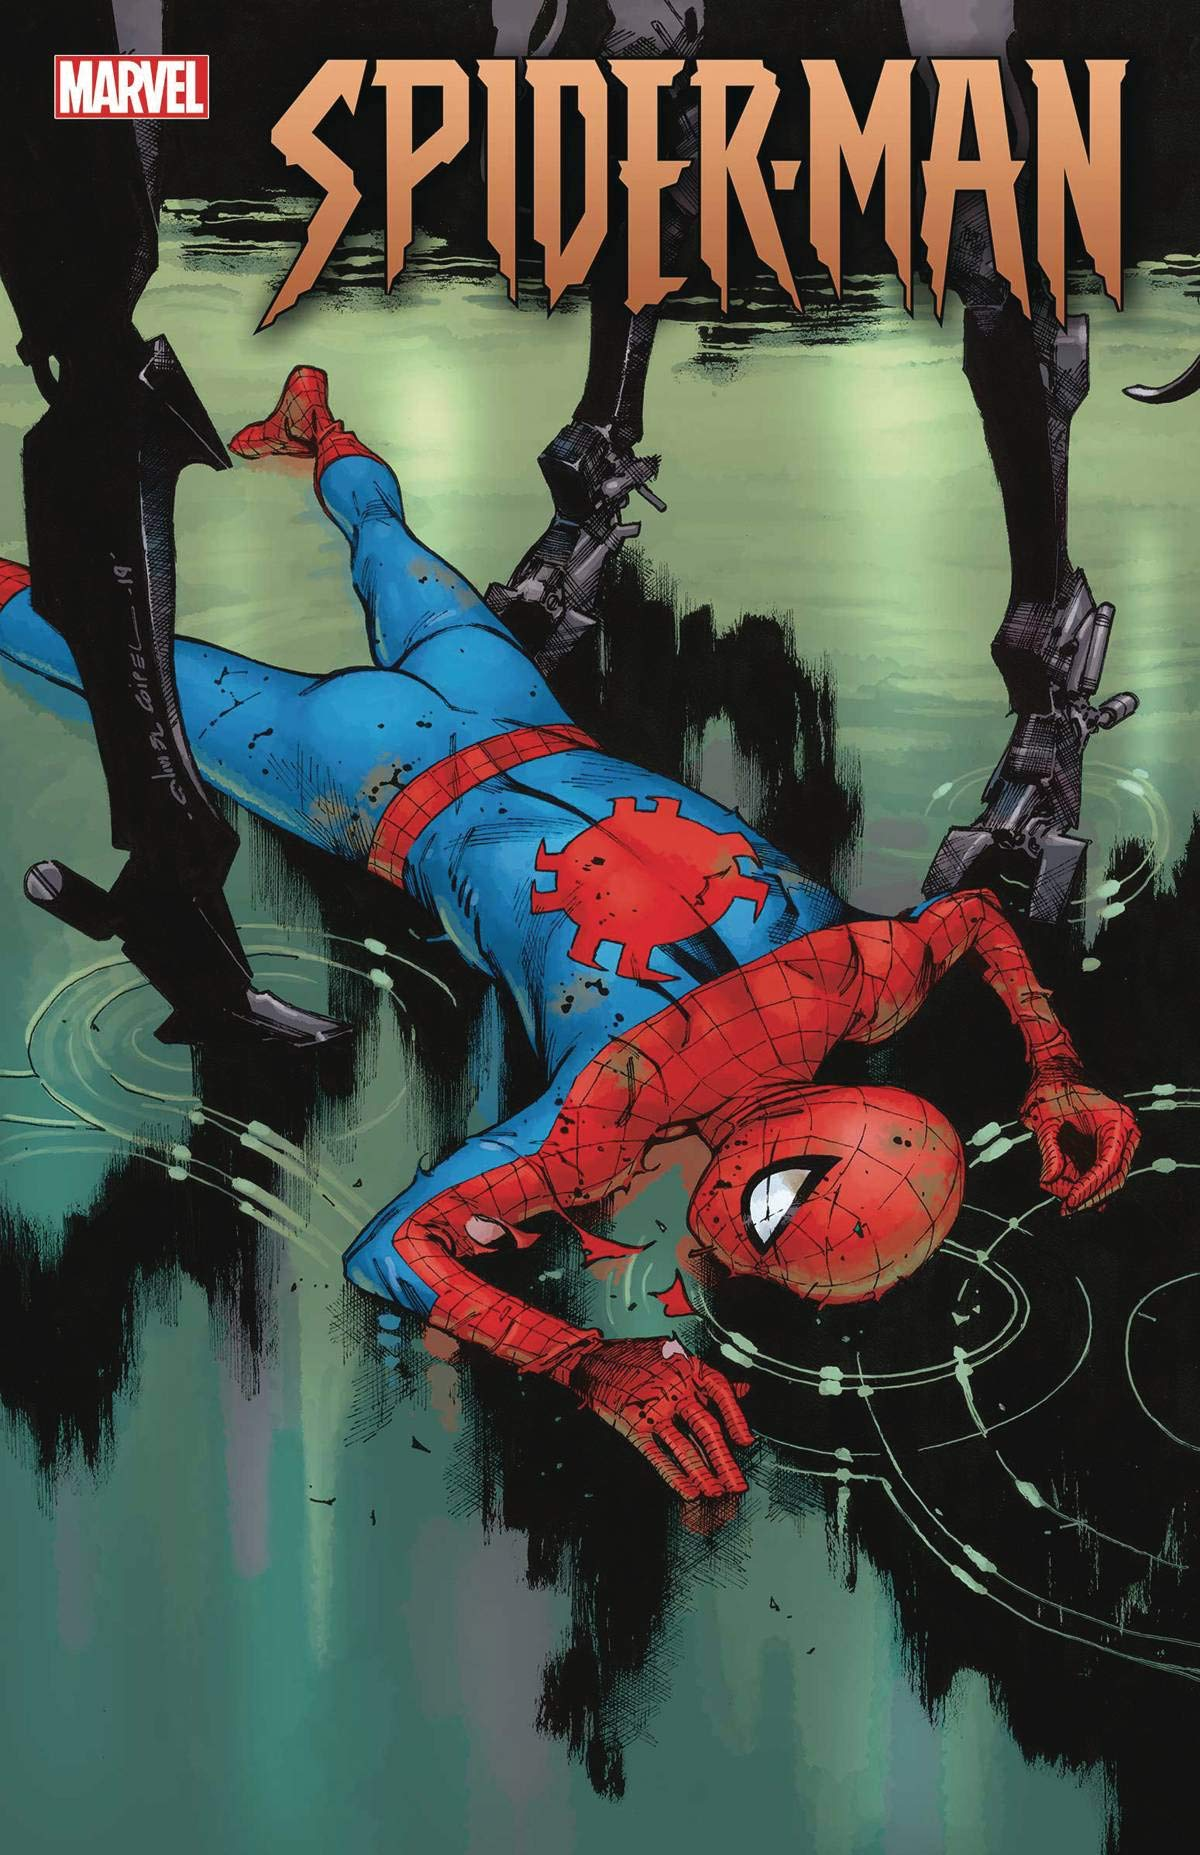 SPIDER-MAN #1 RAMOS PARTY VARIANT J J ABRAMS MARVEL COMIC BOOK 2019 OF 5